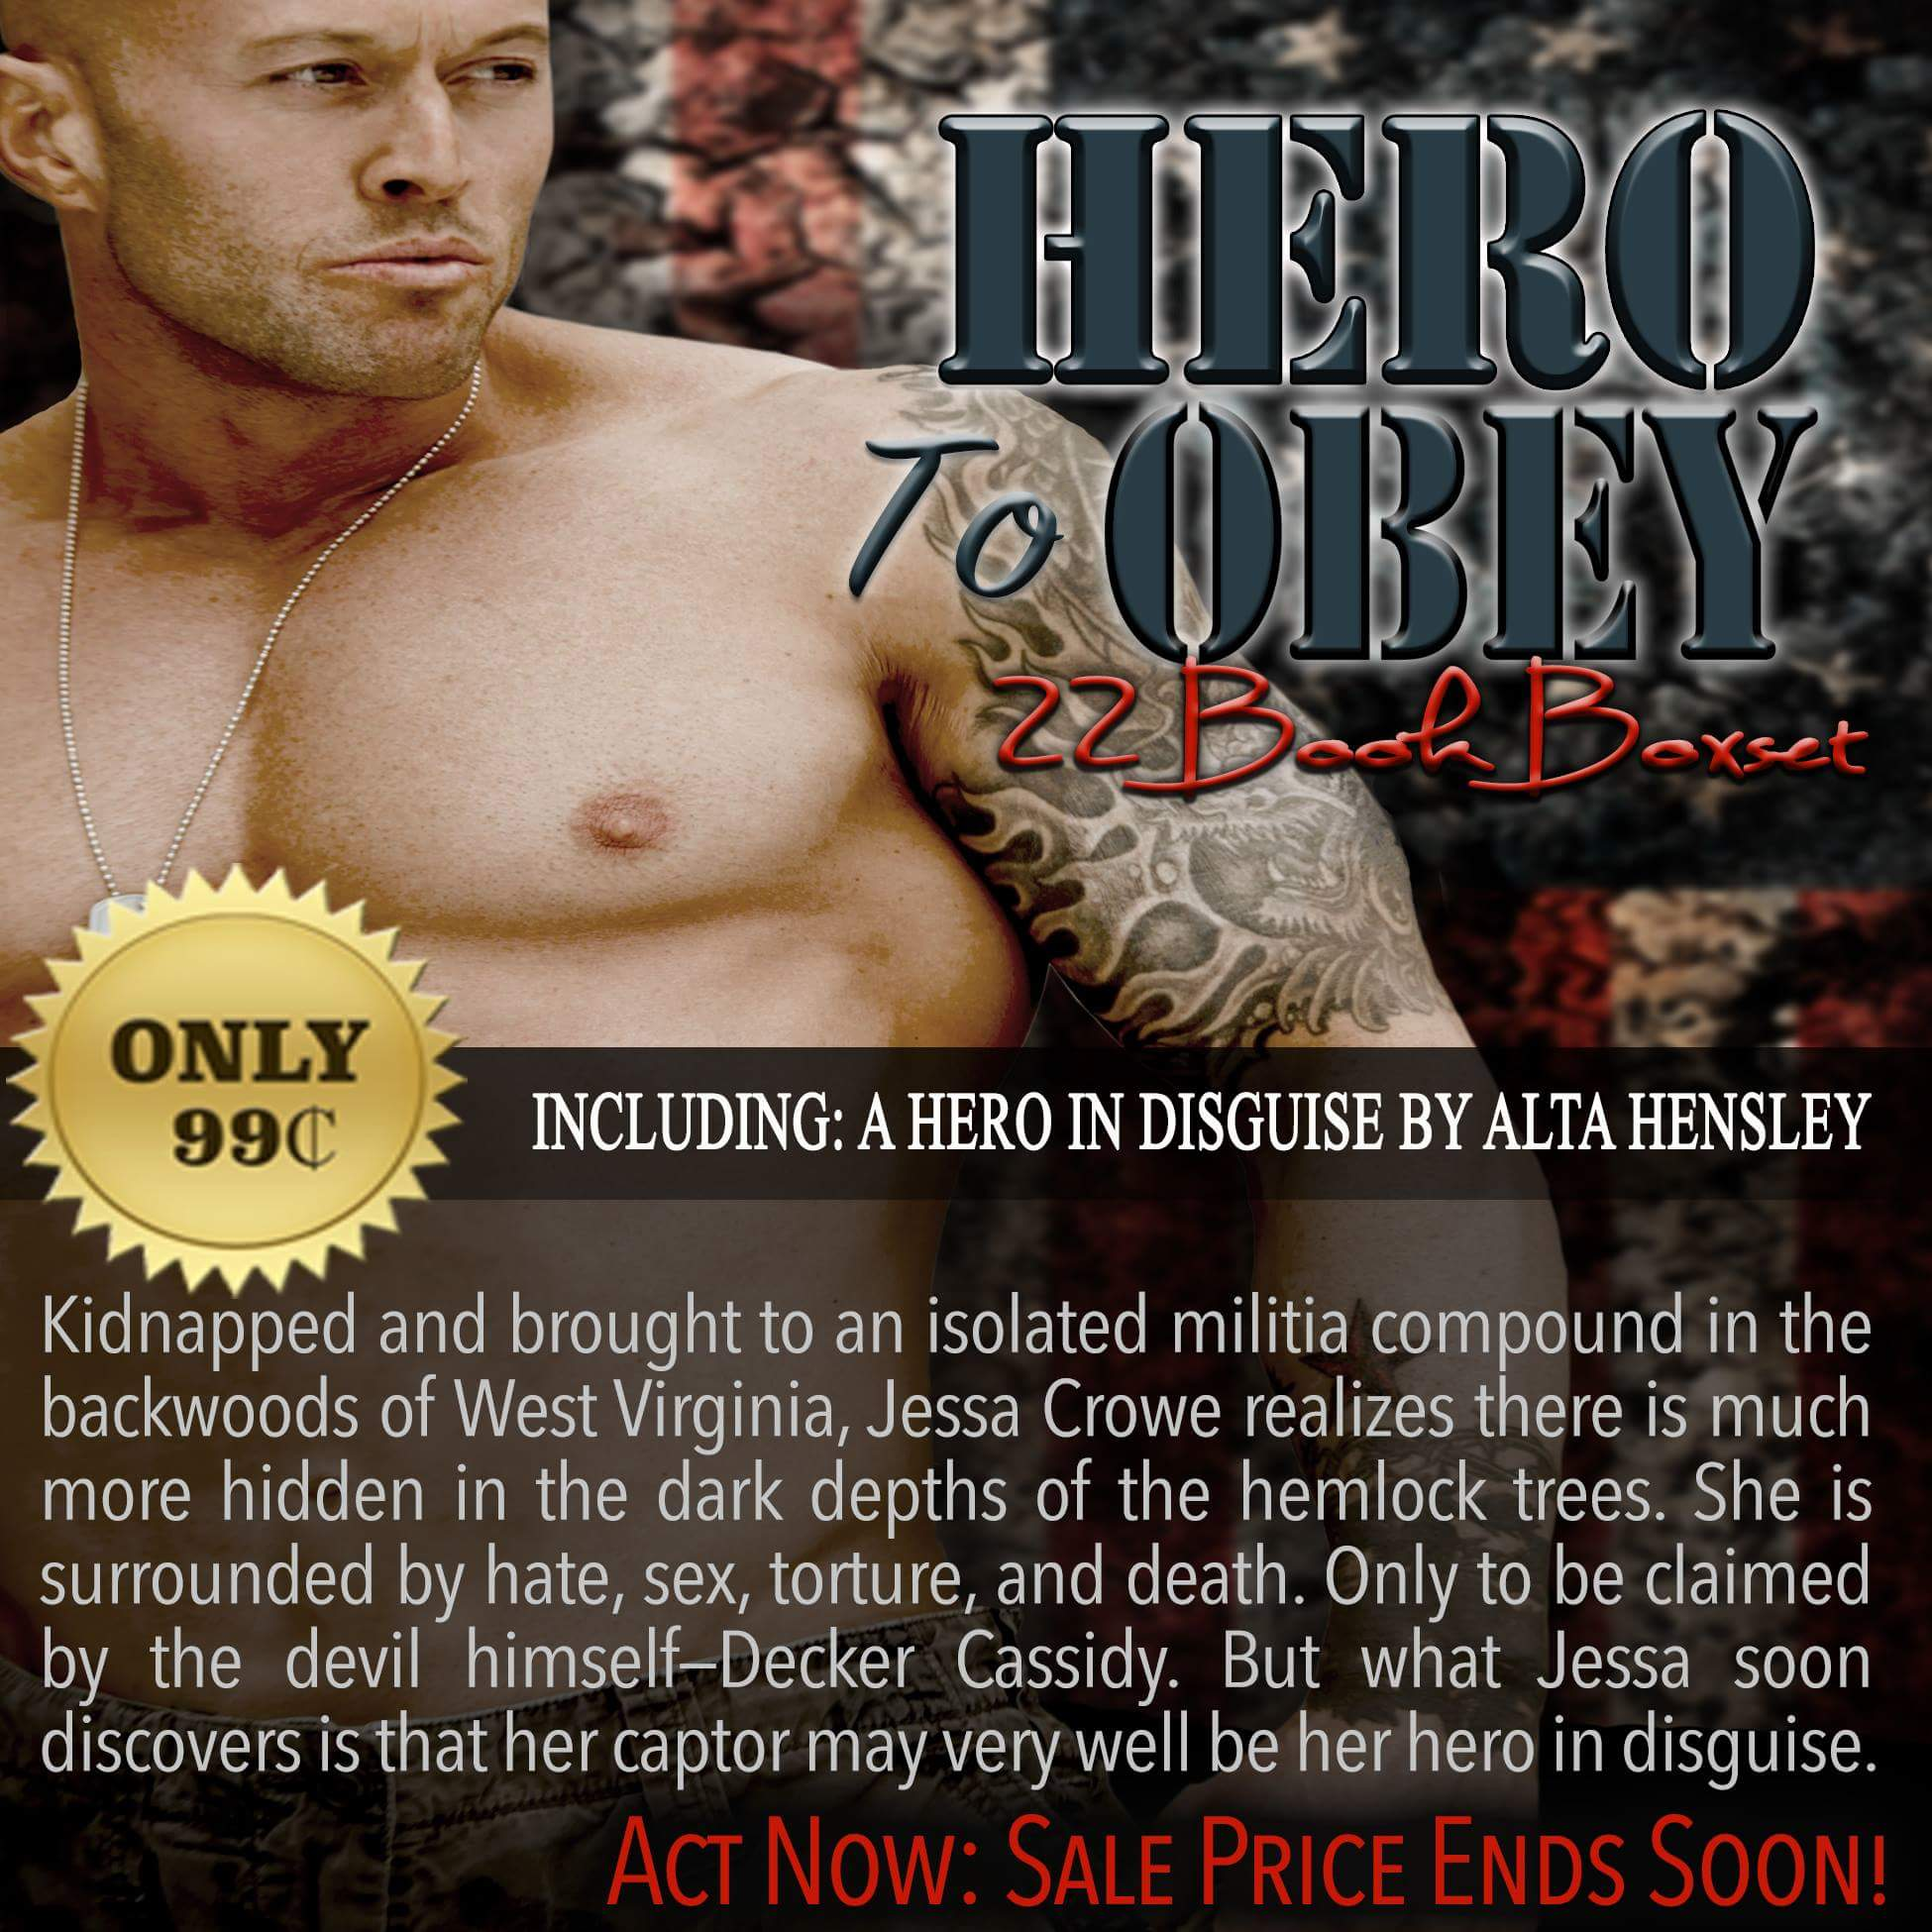 Hero To Obey Book Cover Model Actor John Joseph Quinlan by Alta Hensley. #JohnQuinlan #Hero2obey